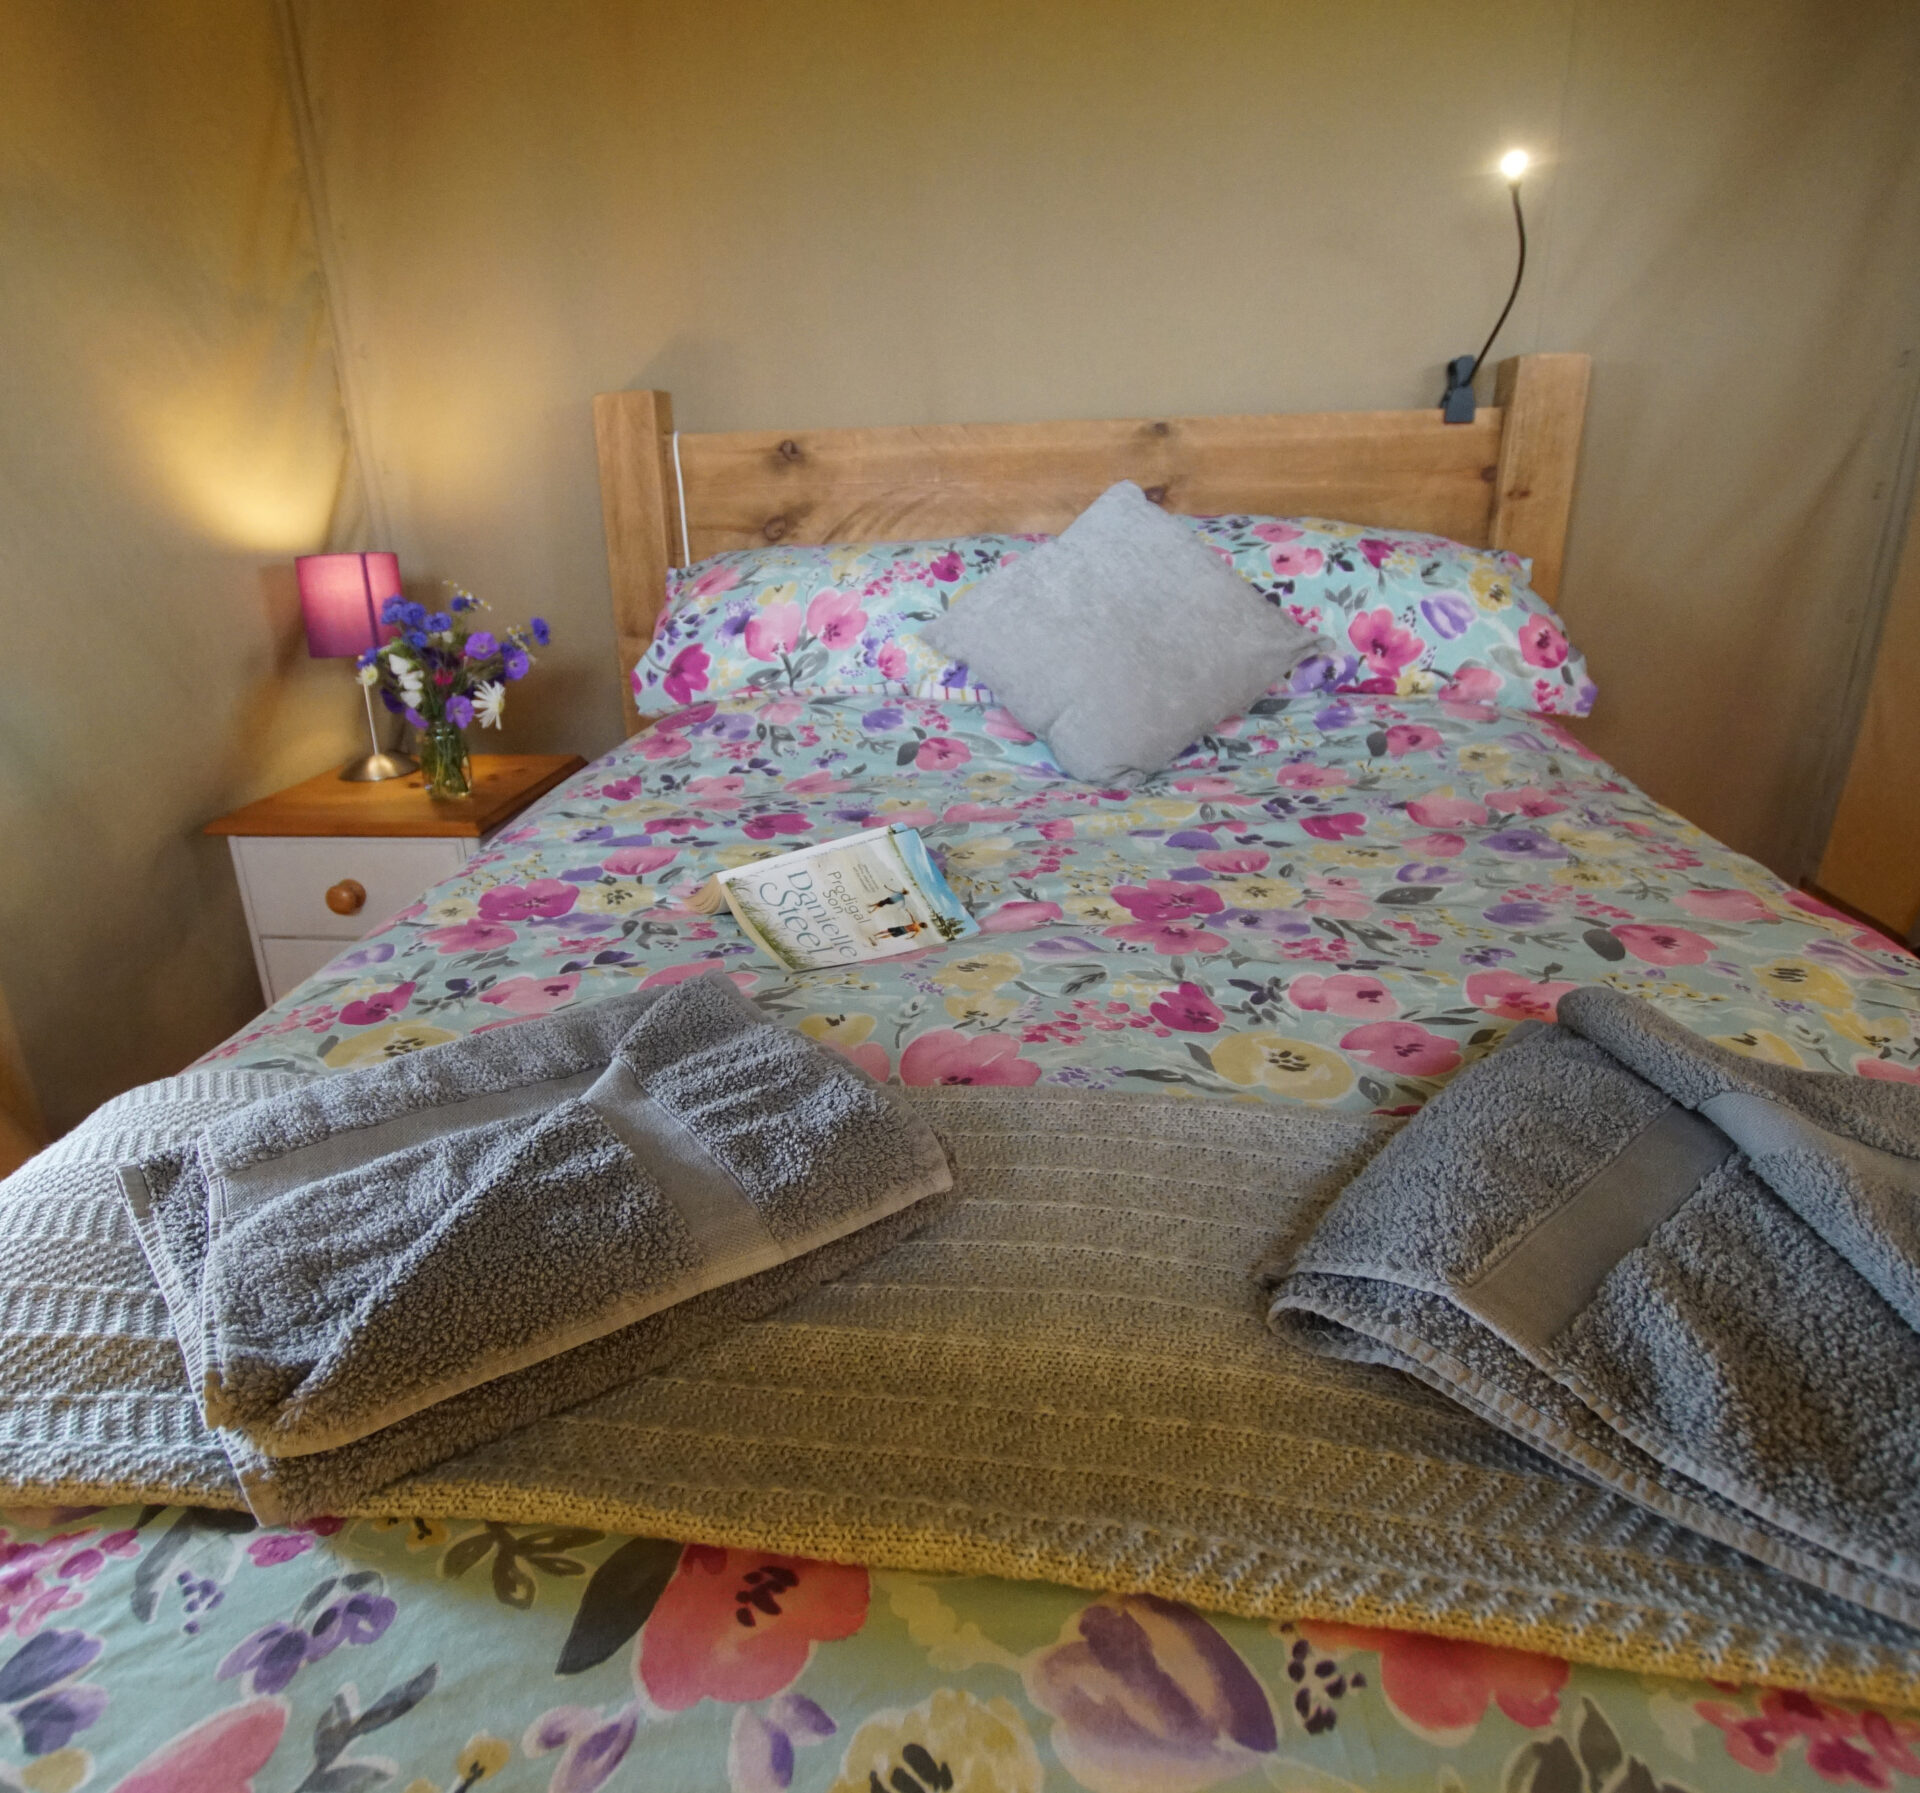 Double bed at Village Farm Getaway, holidays glamping and luxury camping in East Midlands and Leicestershire